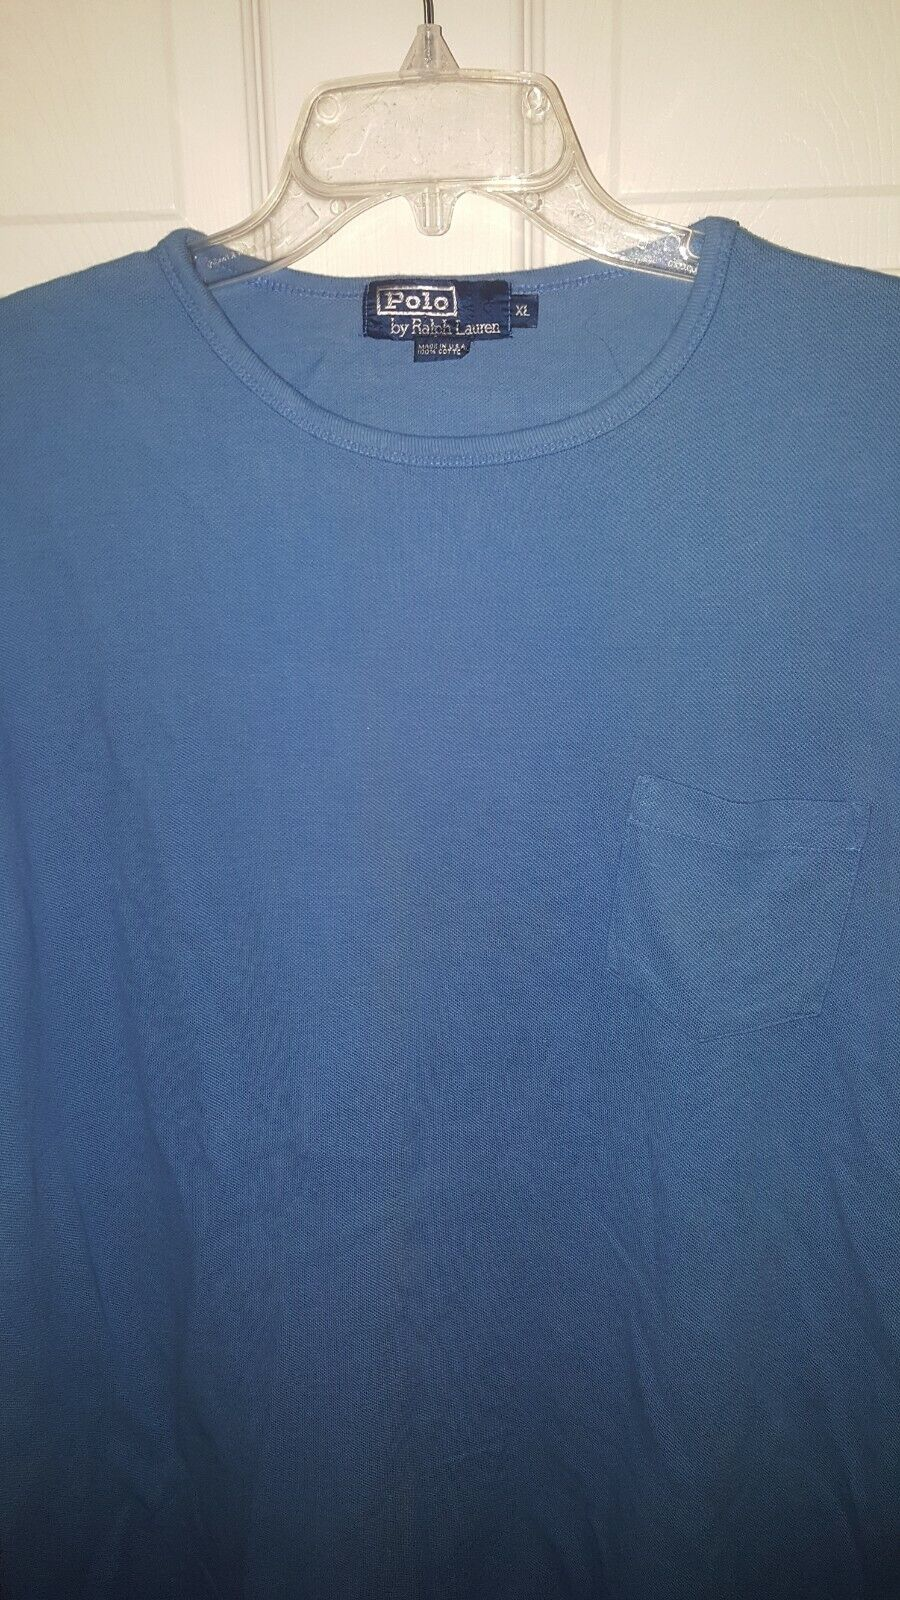 80's Vintage Polo by Ralph Lauren Knit Long Sleev… - image 1